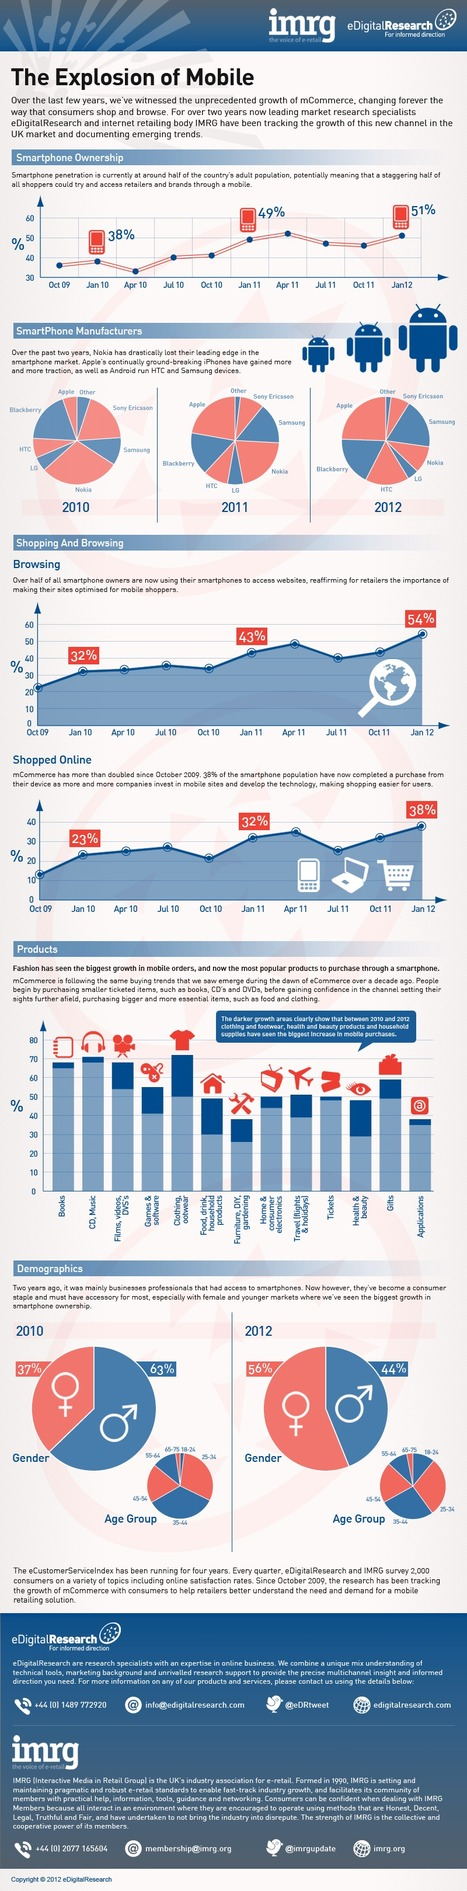 The growth of mobile commerce: infographic | Mobile & Magasins | Scoop.it